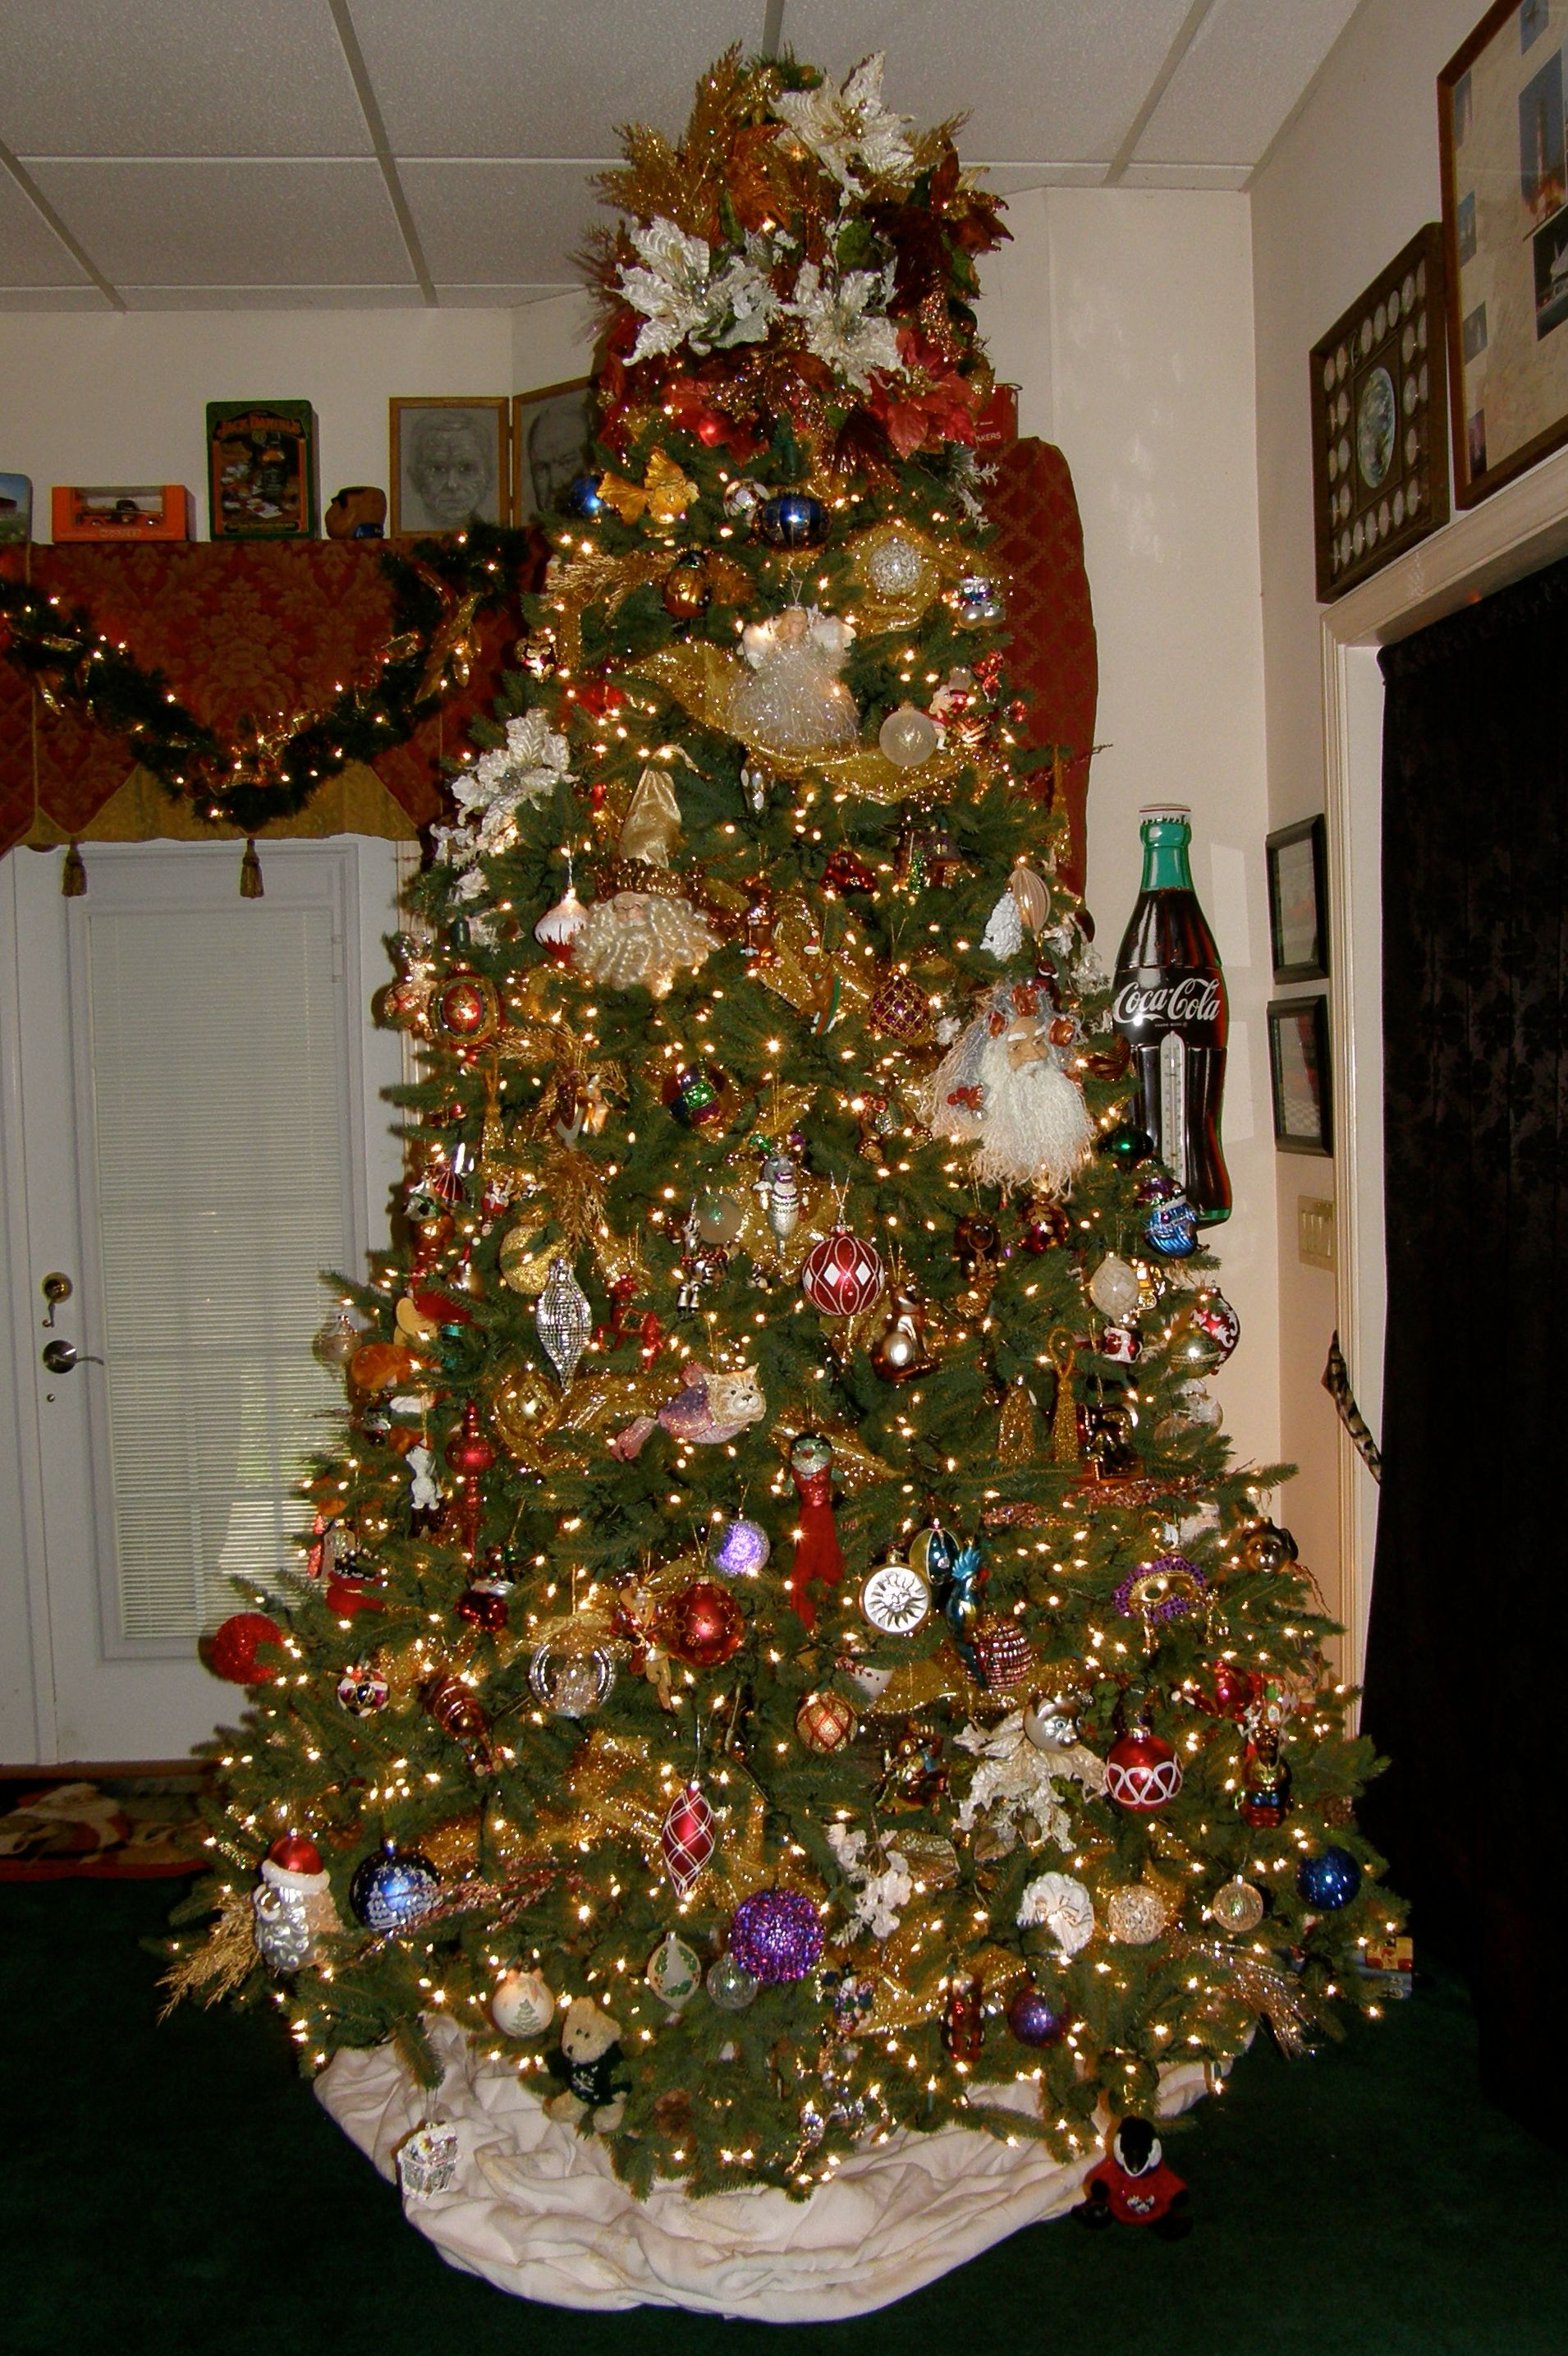 Christmas tree techneats How do you decorate a christmas tree